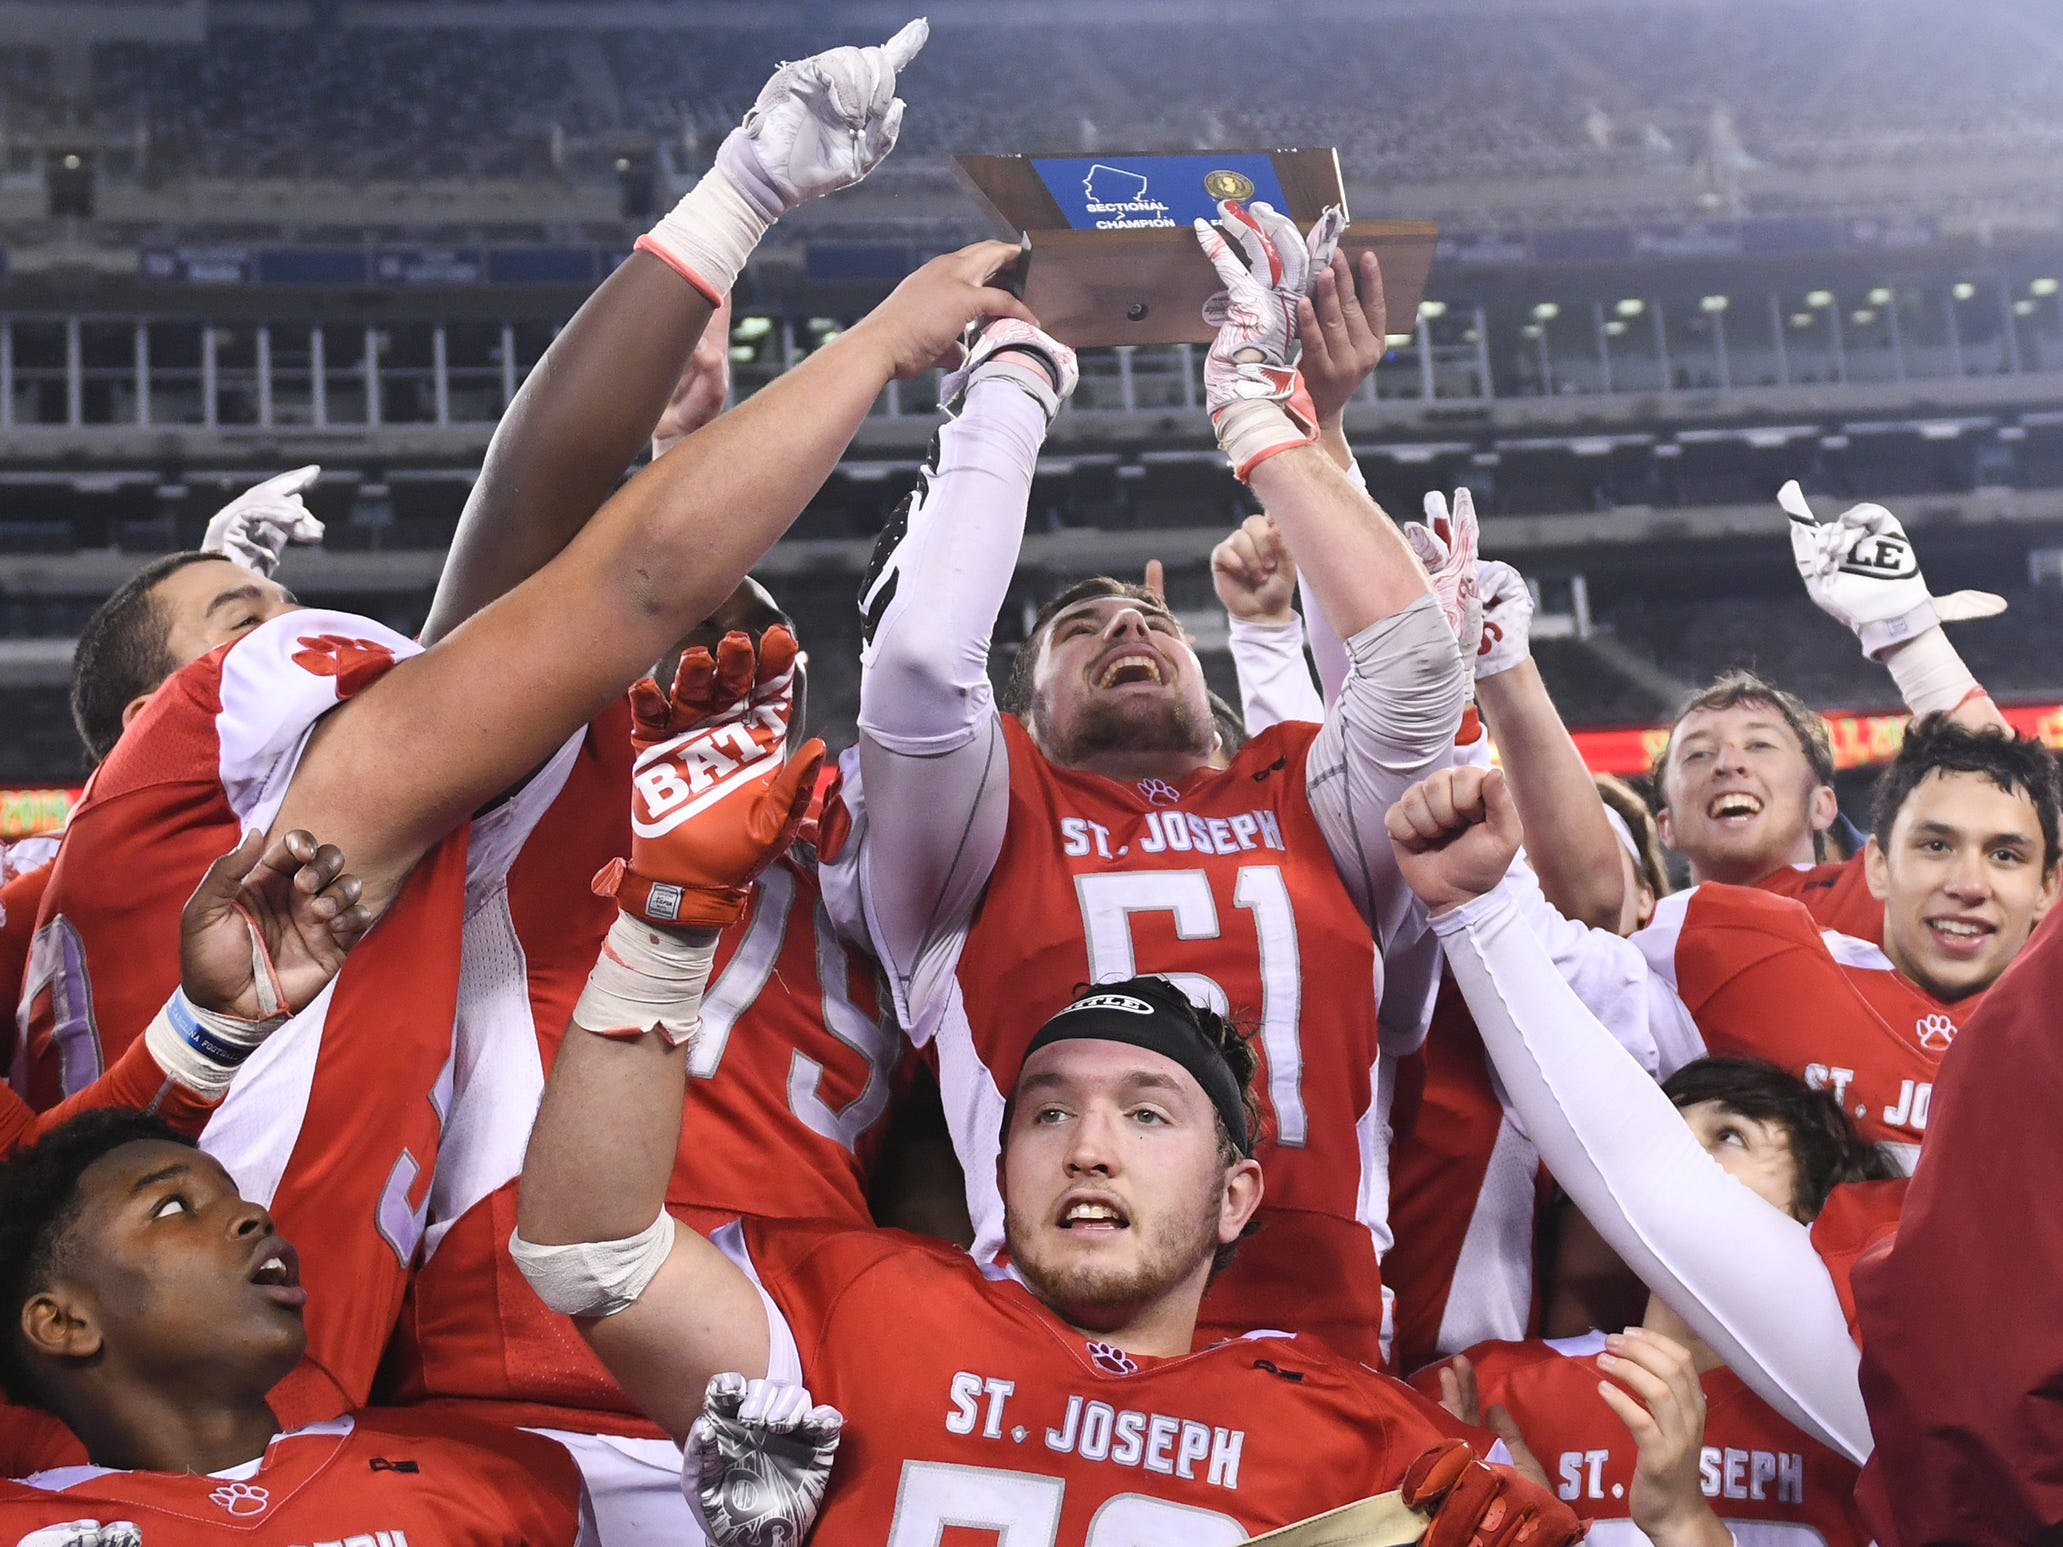 St. Joseph's Bobby Hyndman raises the NJSIAA Non-Public 2 state championship trophy after a 41-22 win over Holy Spirit at MetLife Stadium on Friday, November 30, 2018.